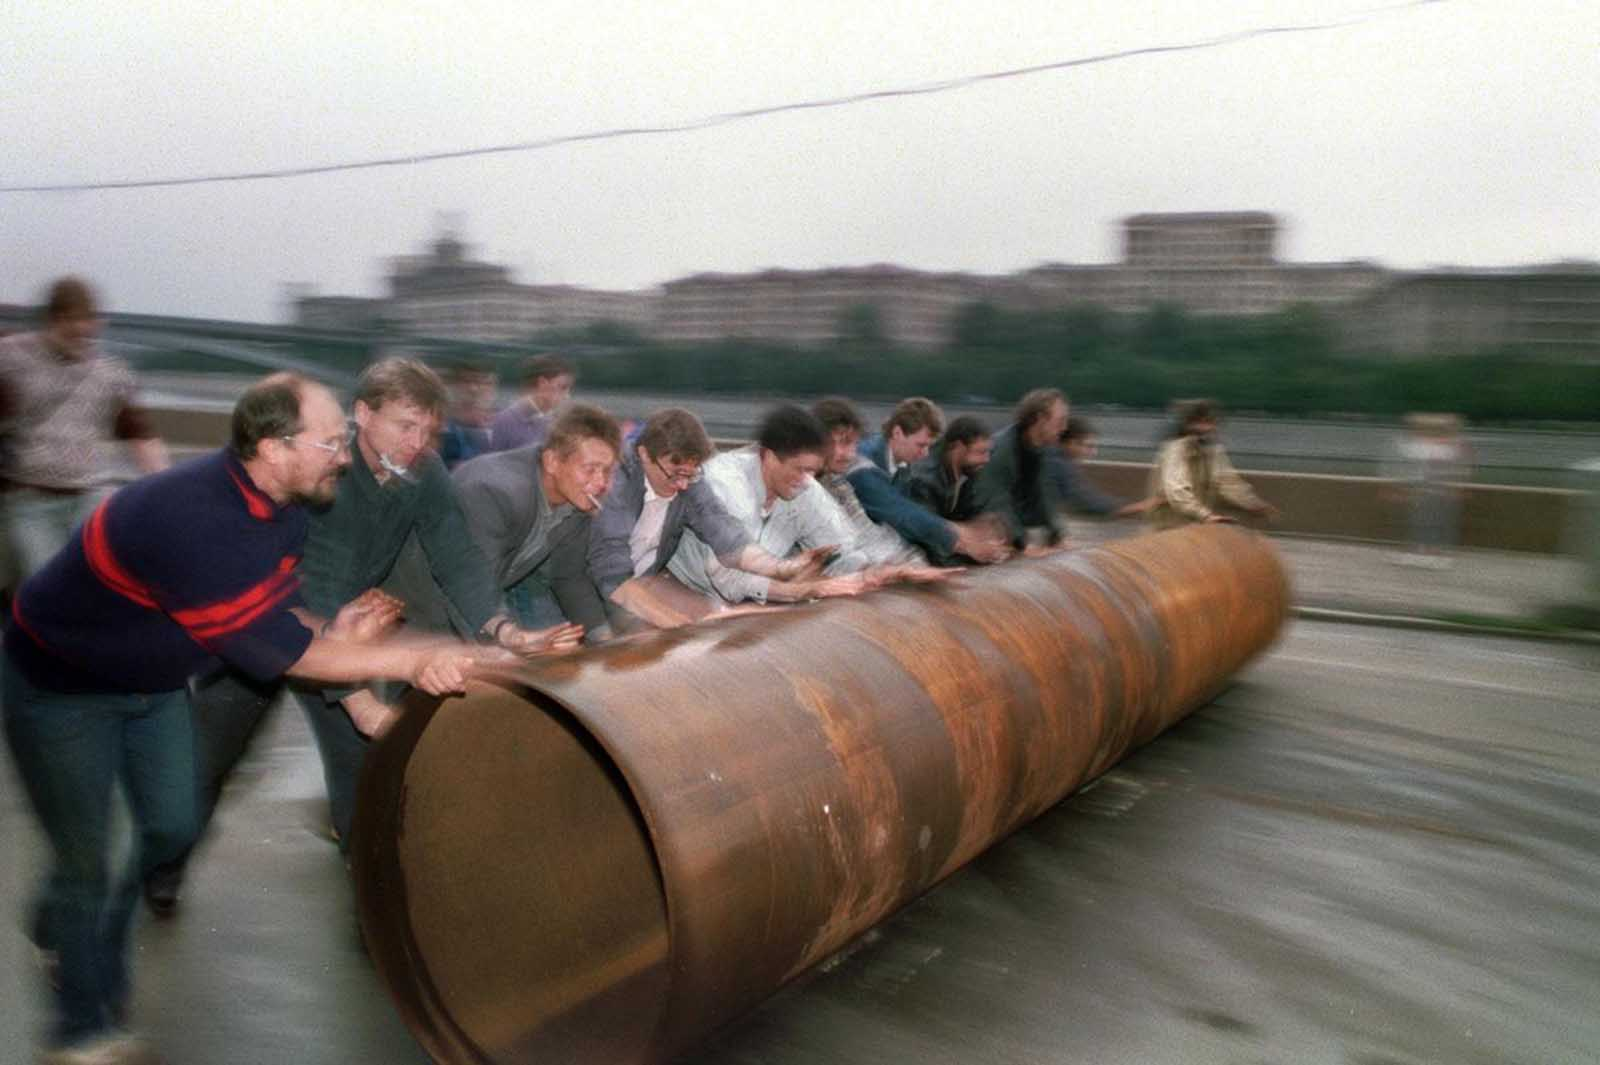 Supporters of Russian president Yeltsin roll a large metal pipe to use as a barricade near the Russian federation building in Moscow, on August 19, 1991, following a military coup attempt by Soviet hardliners.